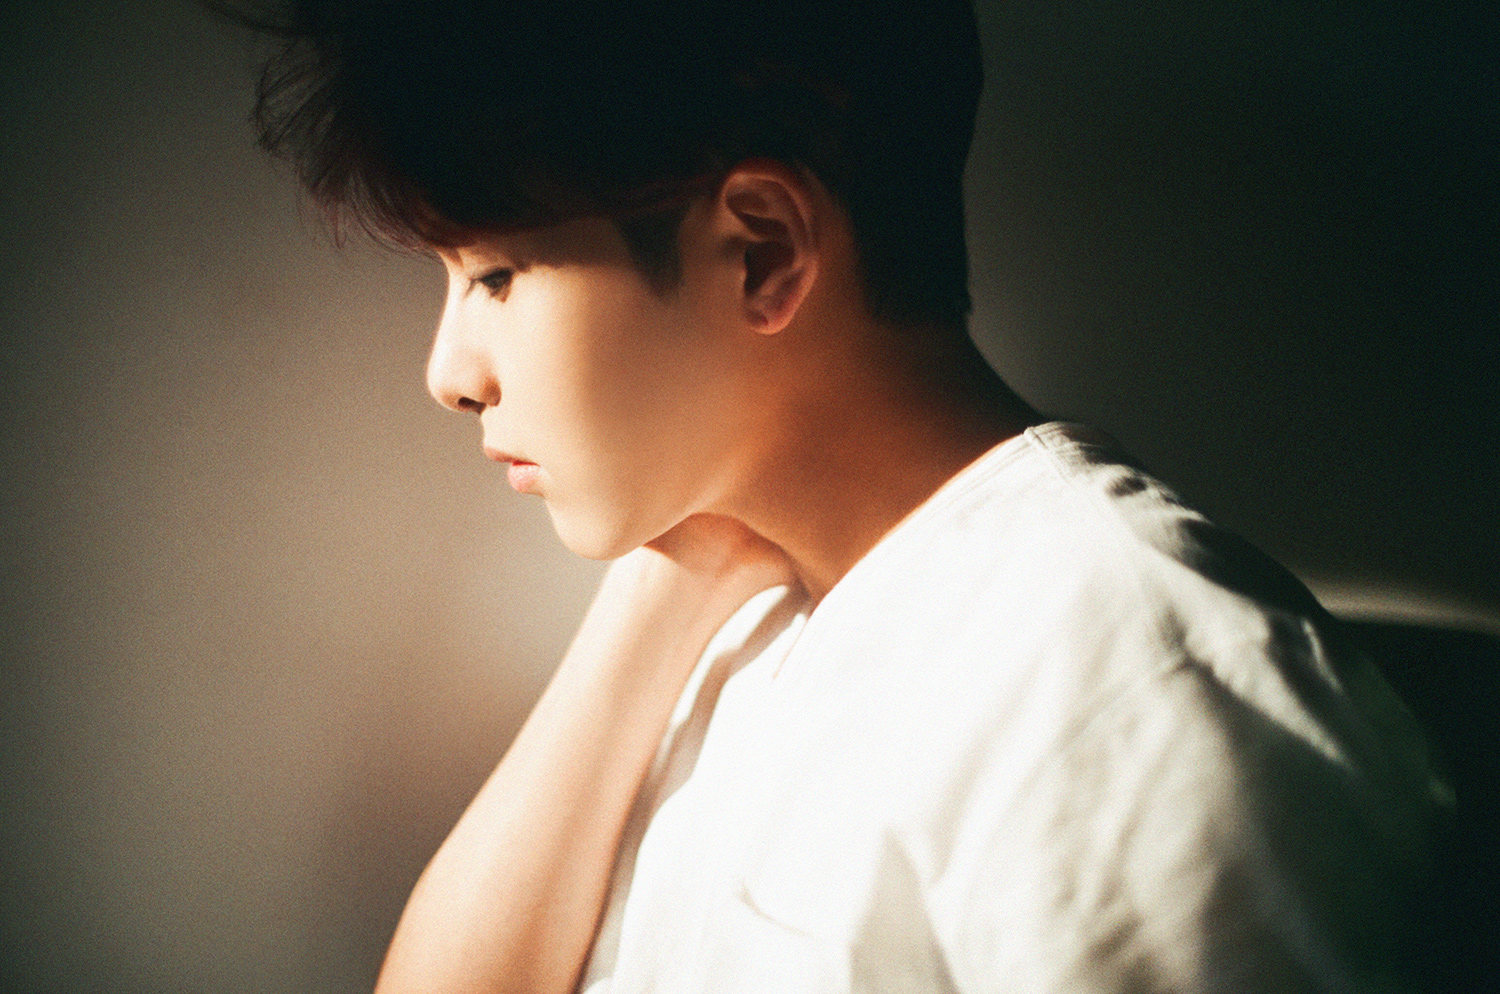 Super Junior's Ryeowook Talks About His Dreams of Singing for a Long Time